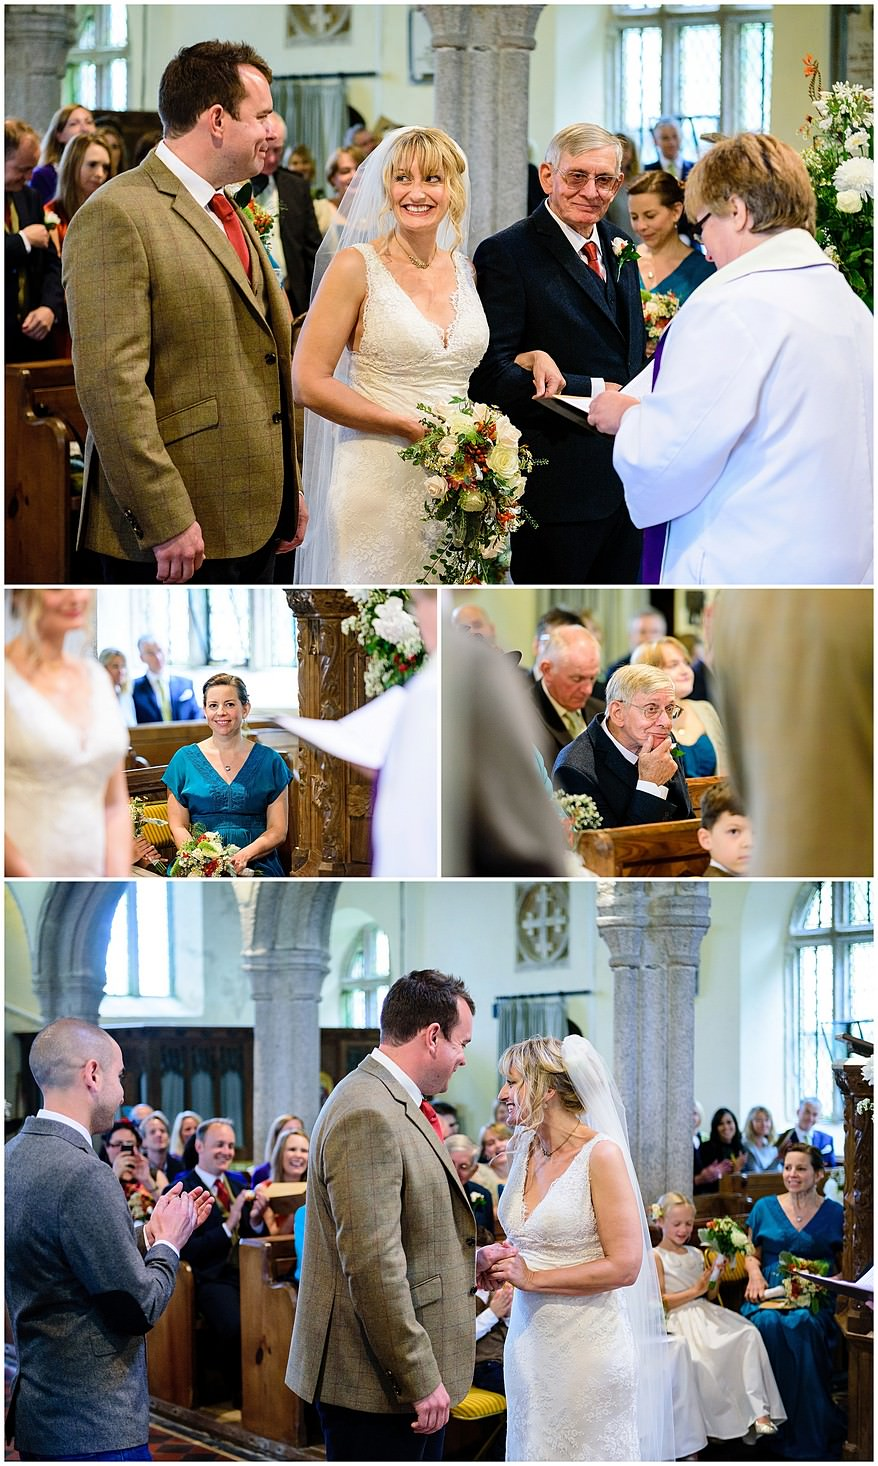 reportage wedding photography at Saint Martin's church at Lewannick